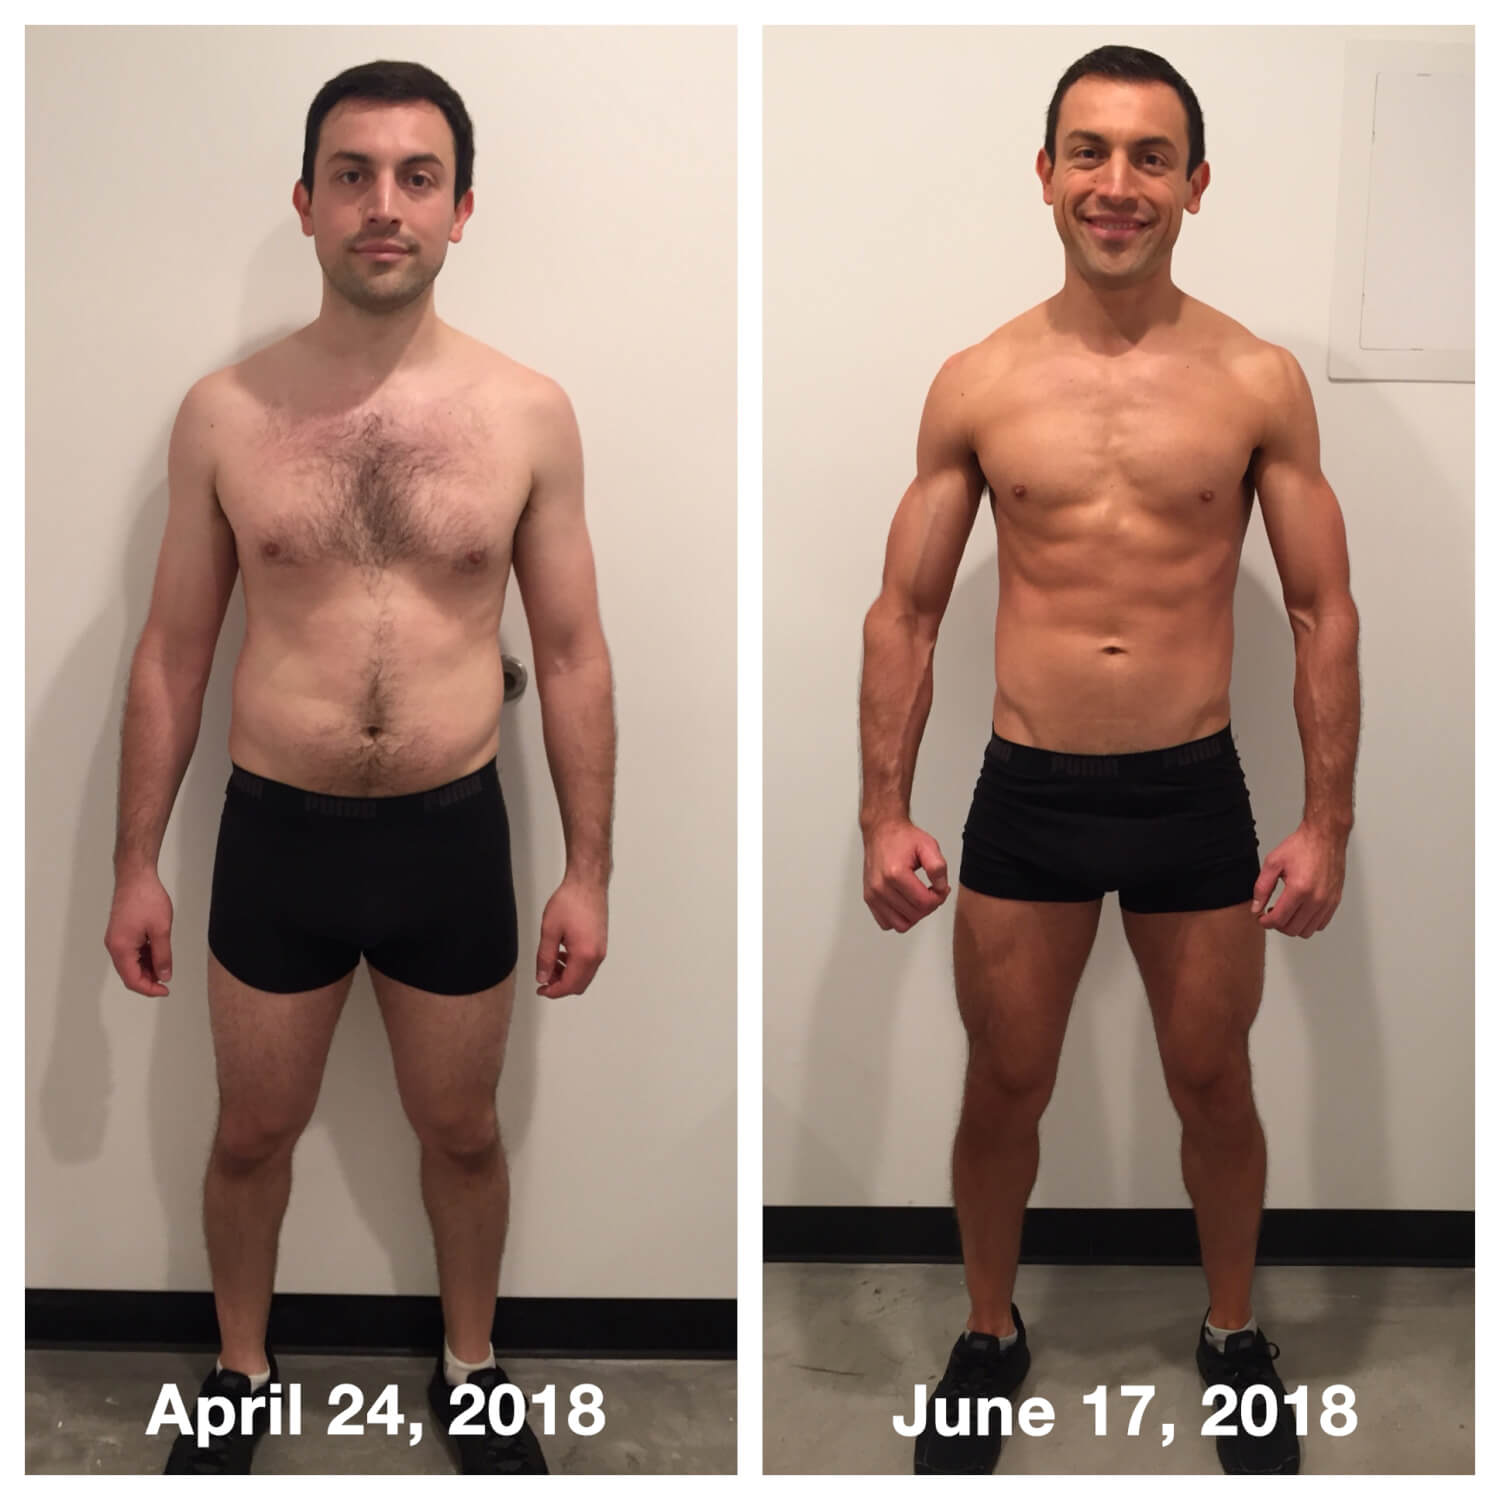 Javier Morquecho before and after body composition transformation story